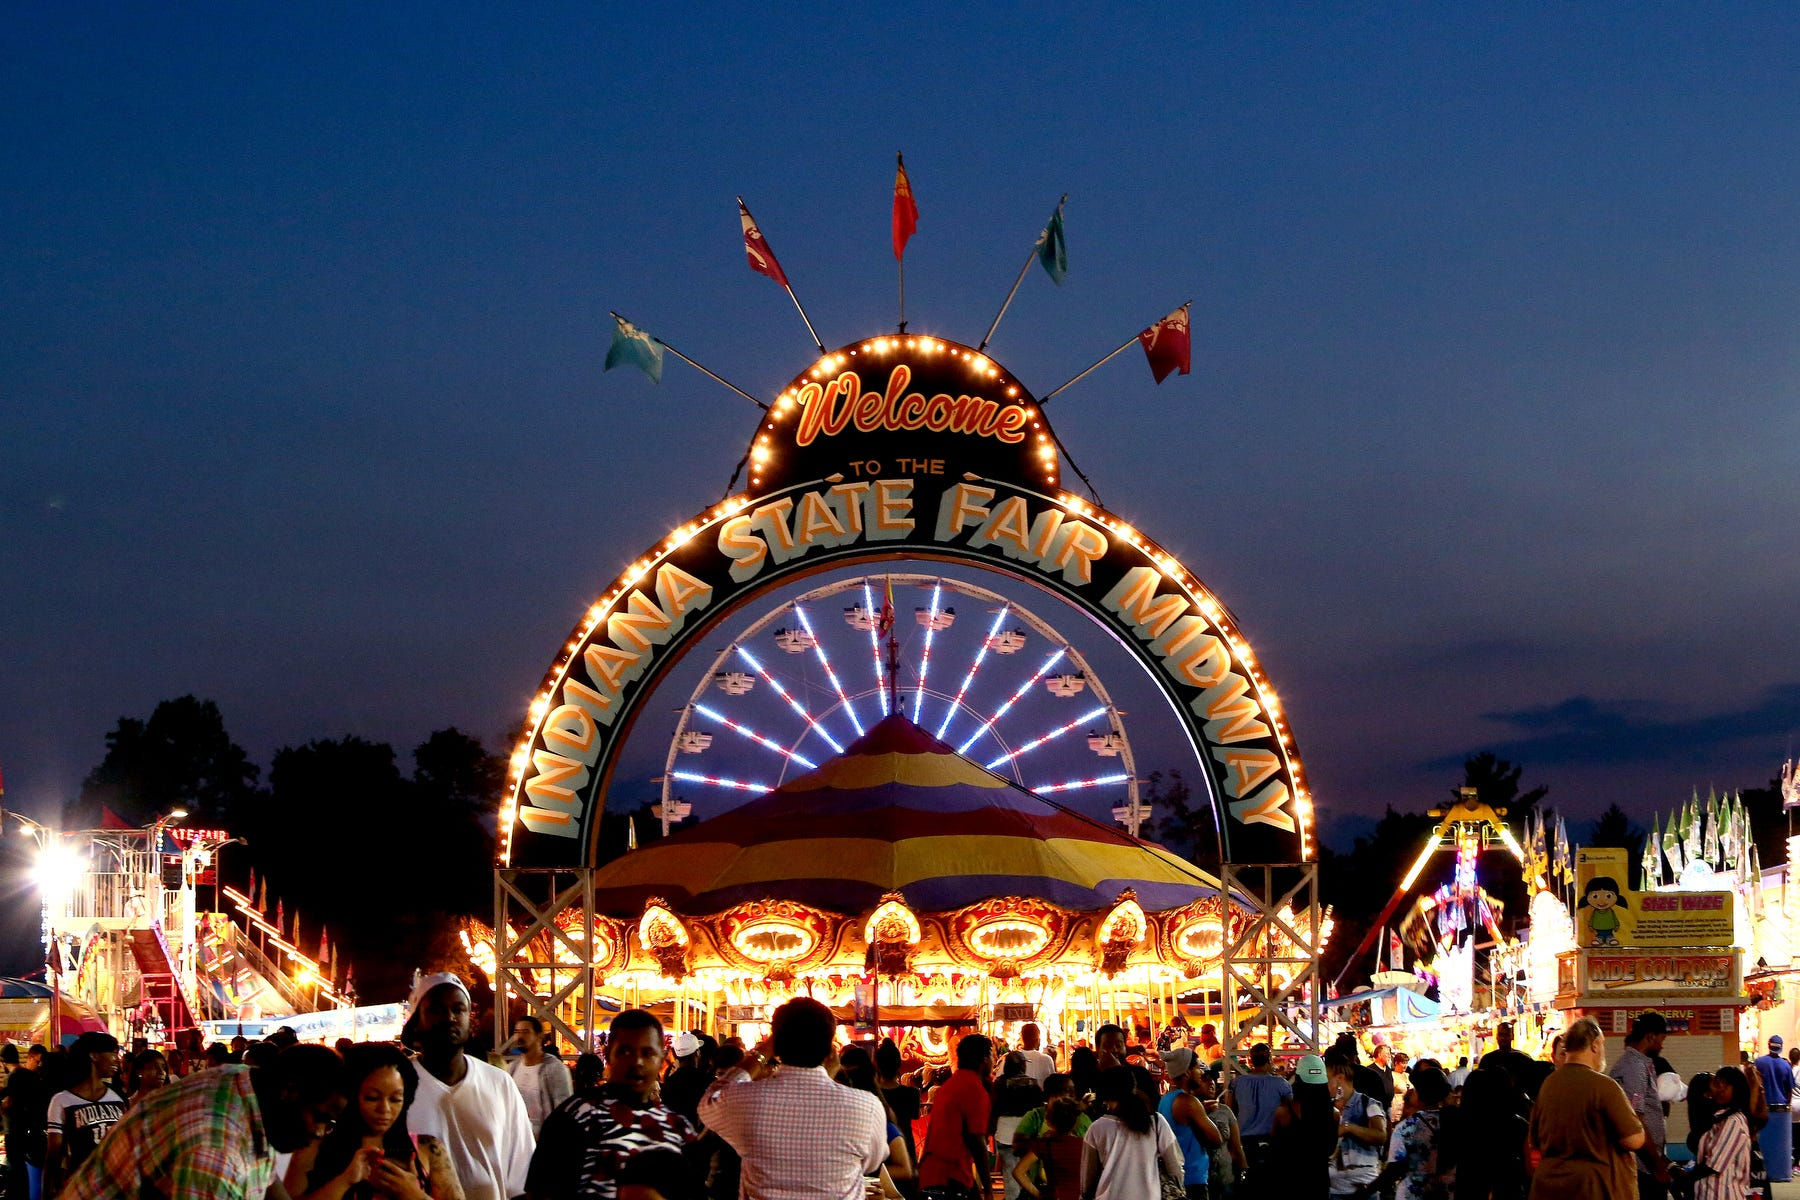 10 nostalgic things to see and do at the Indiana State Fair